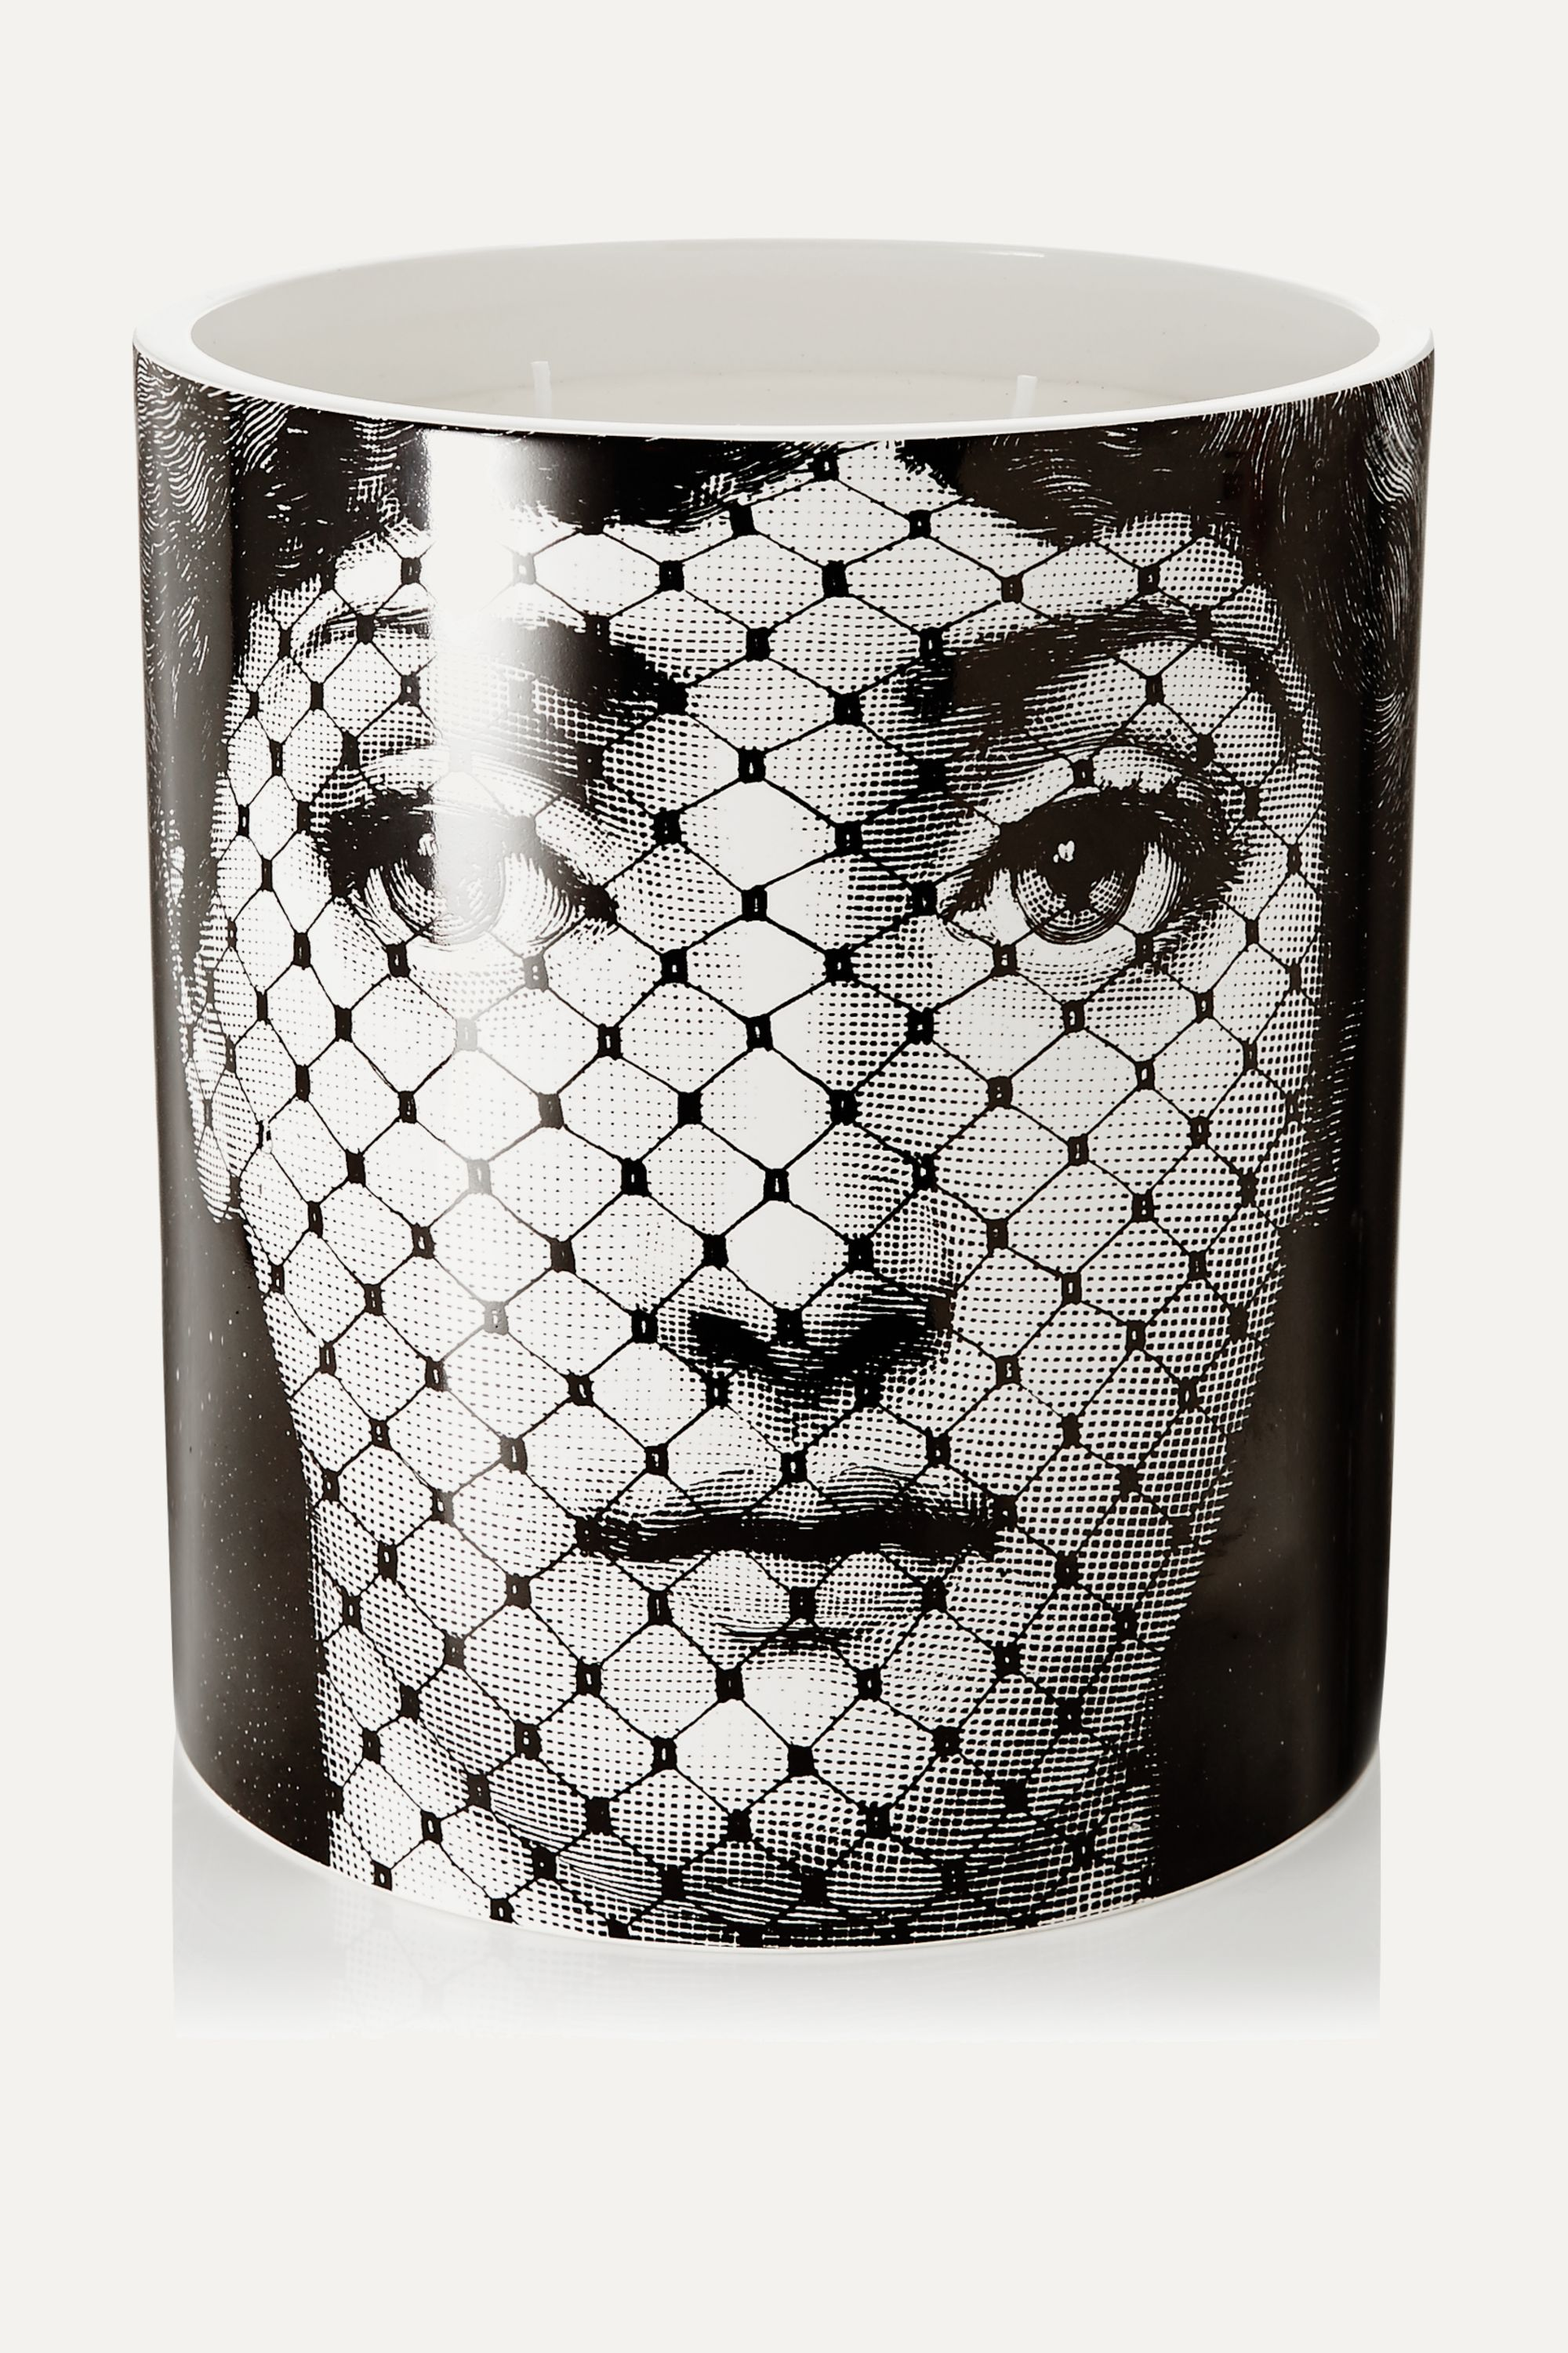 Download Fornasetti Candles Cheap Images